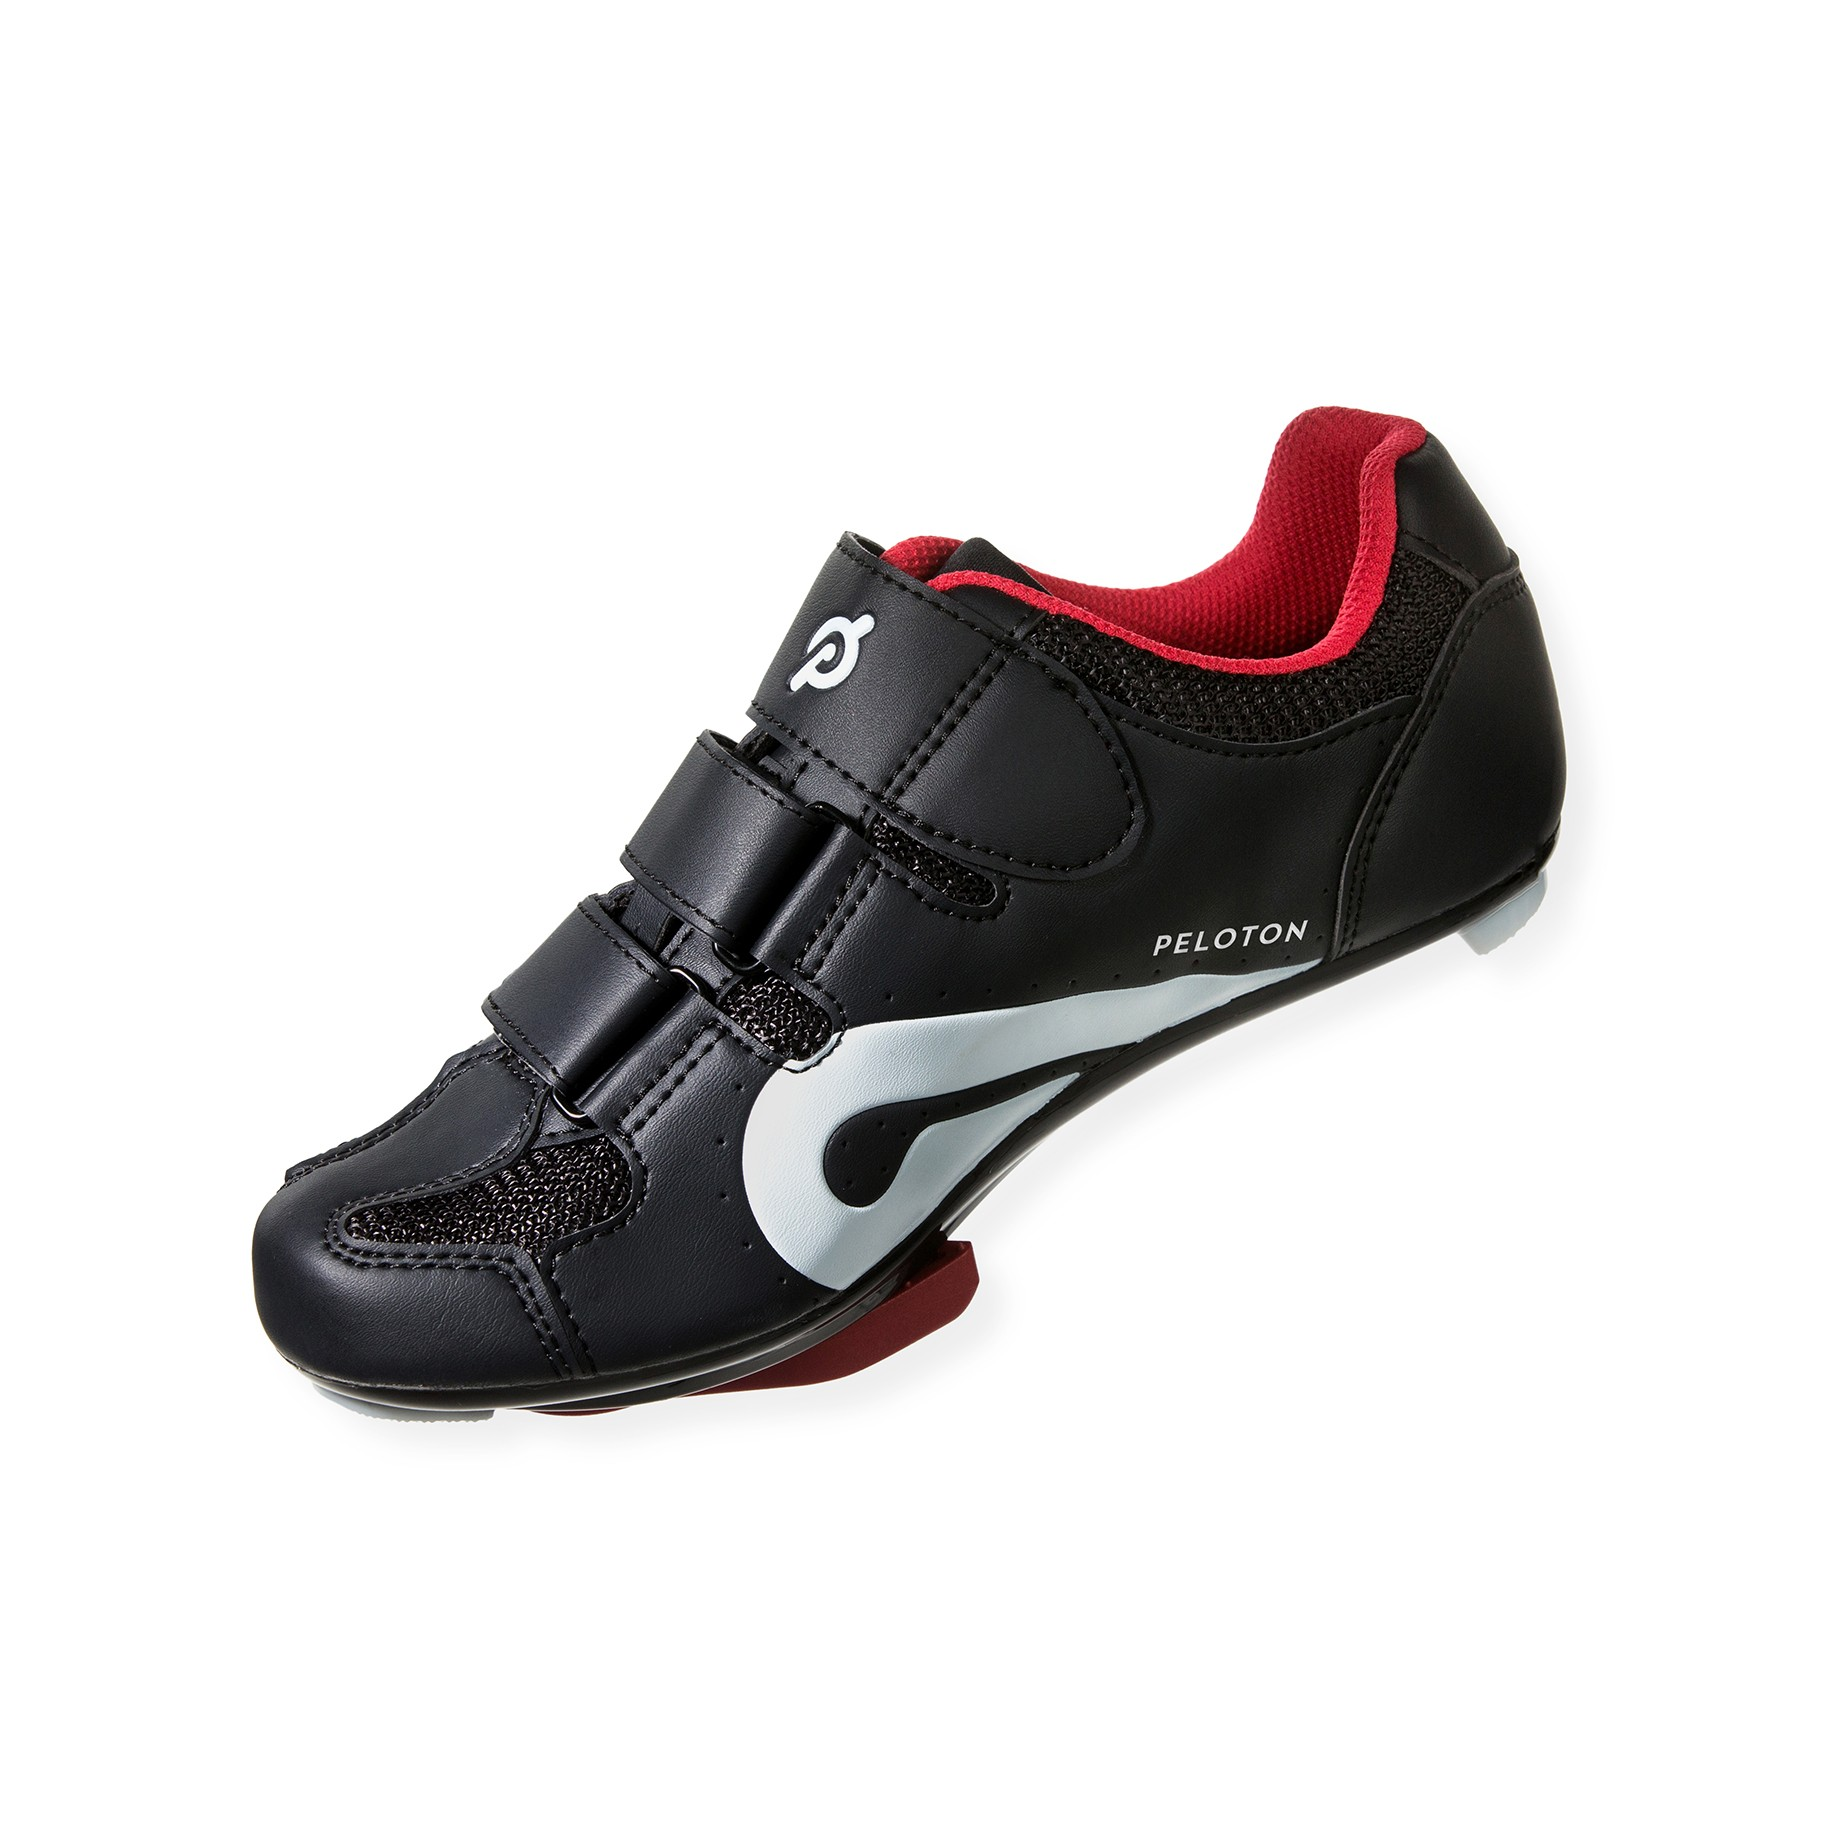 Best Shoes To Cycle In